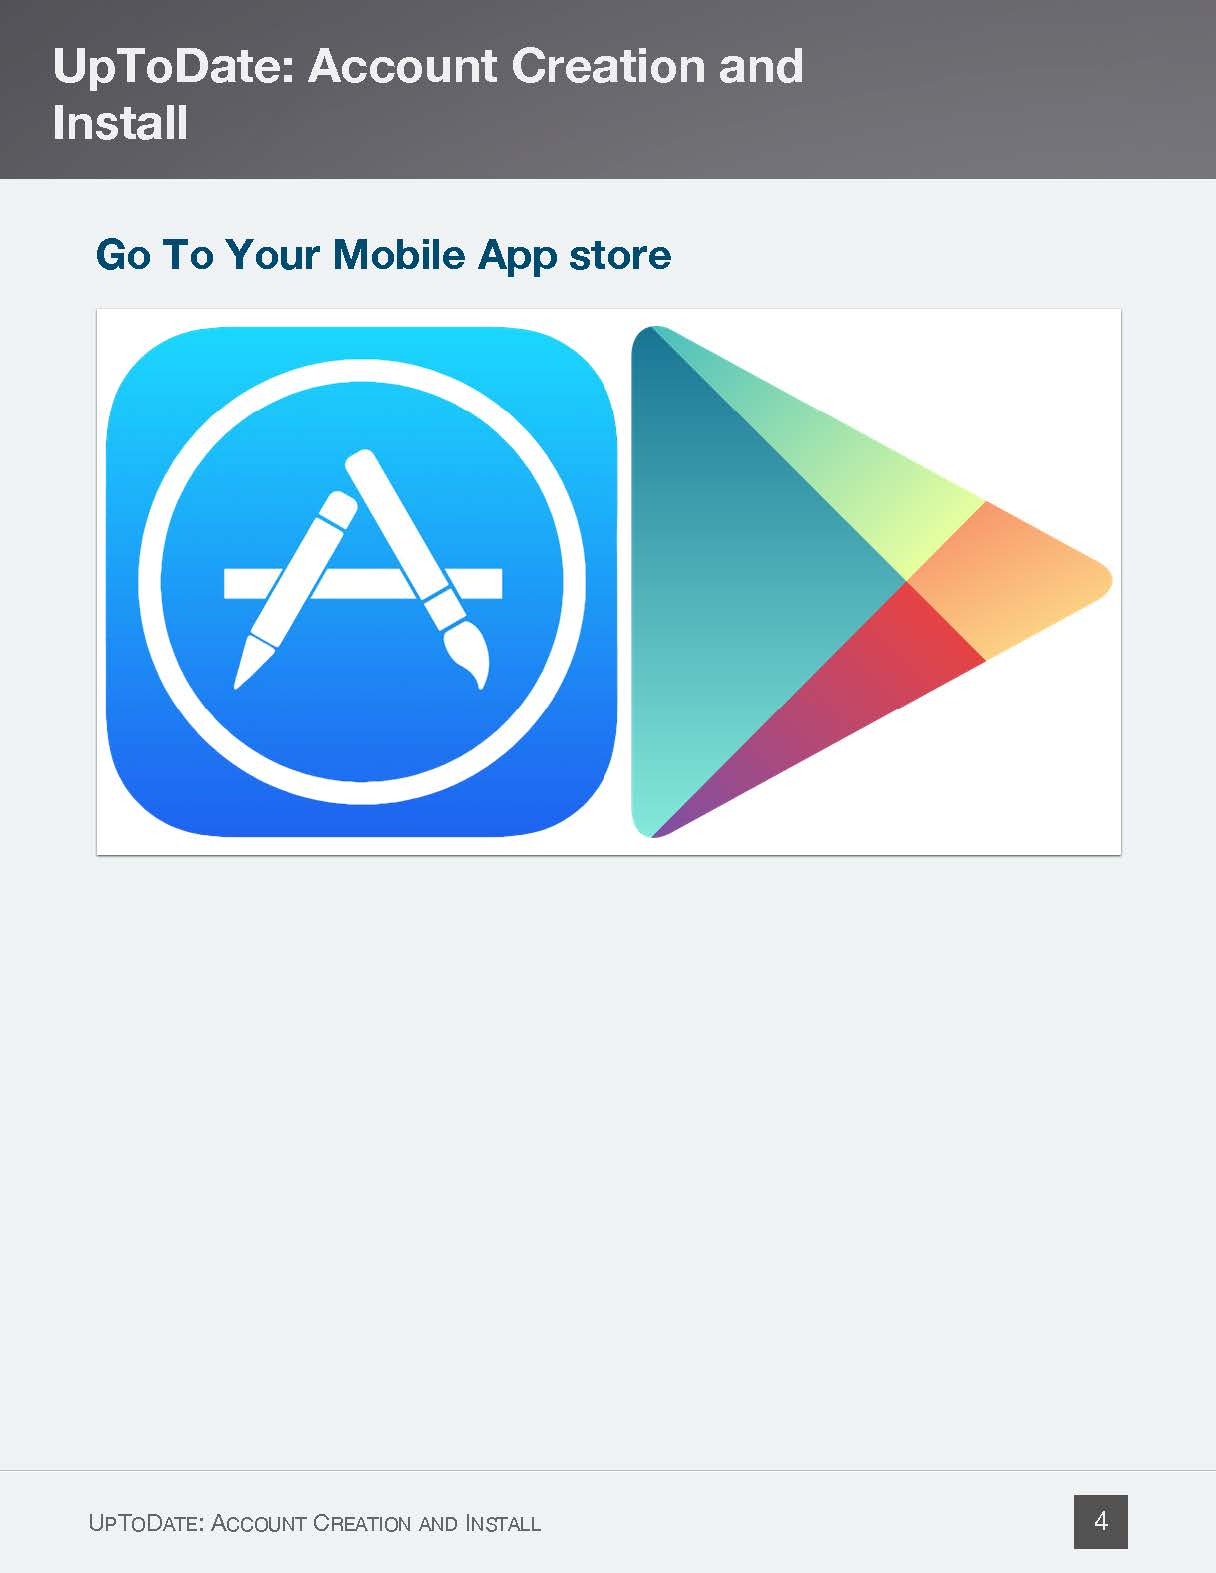 Go to App Store - Page 4